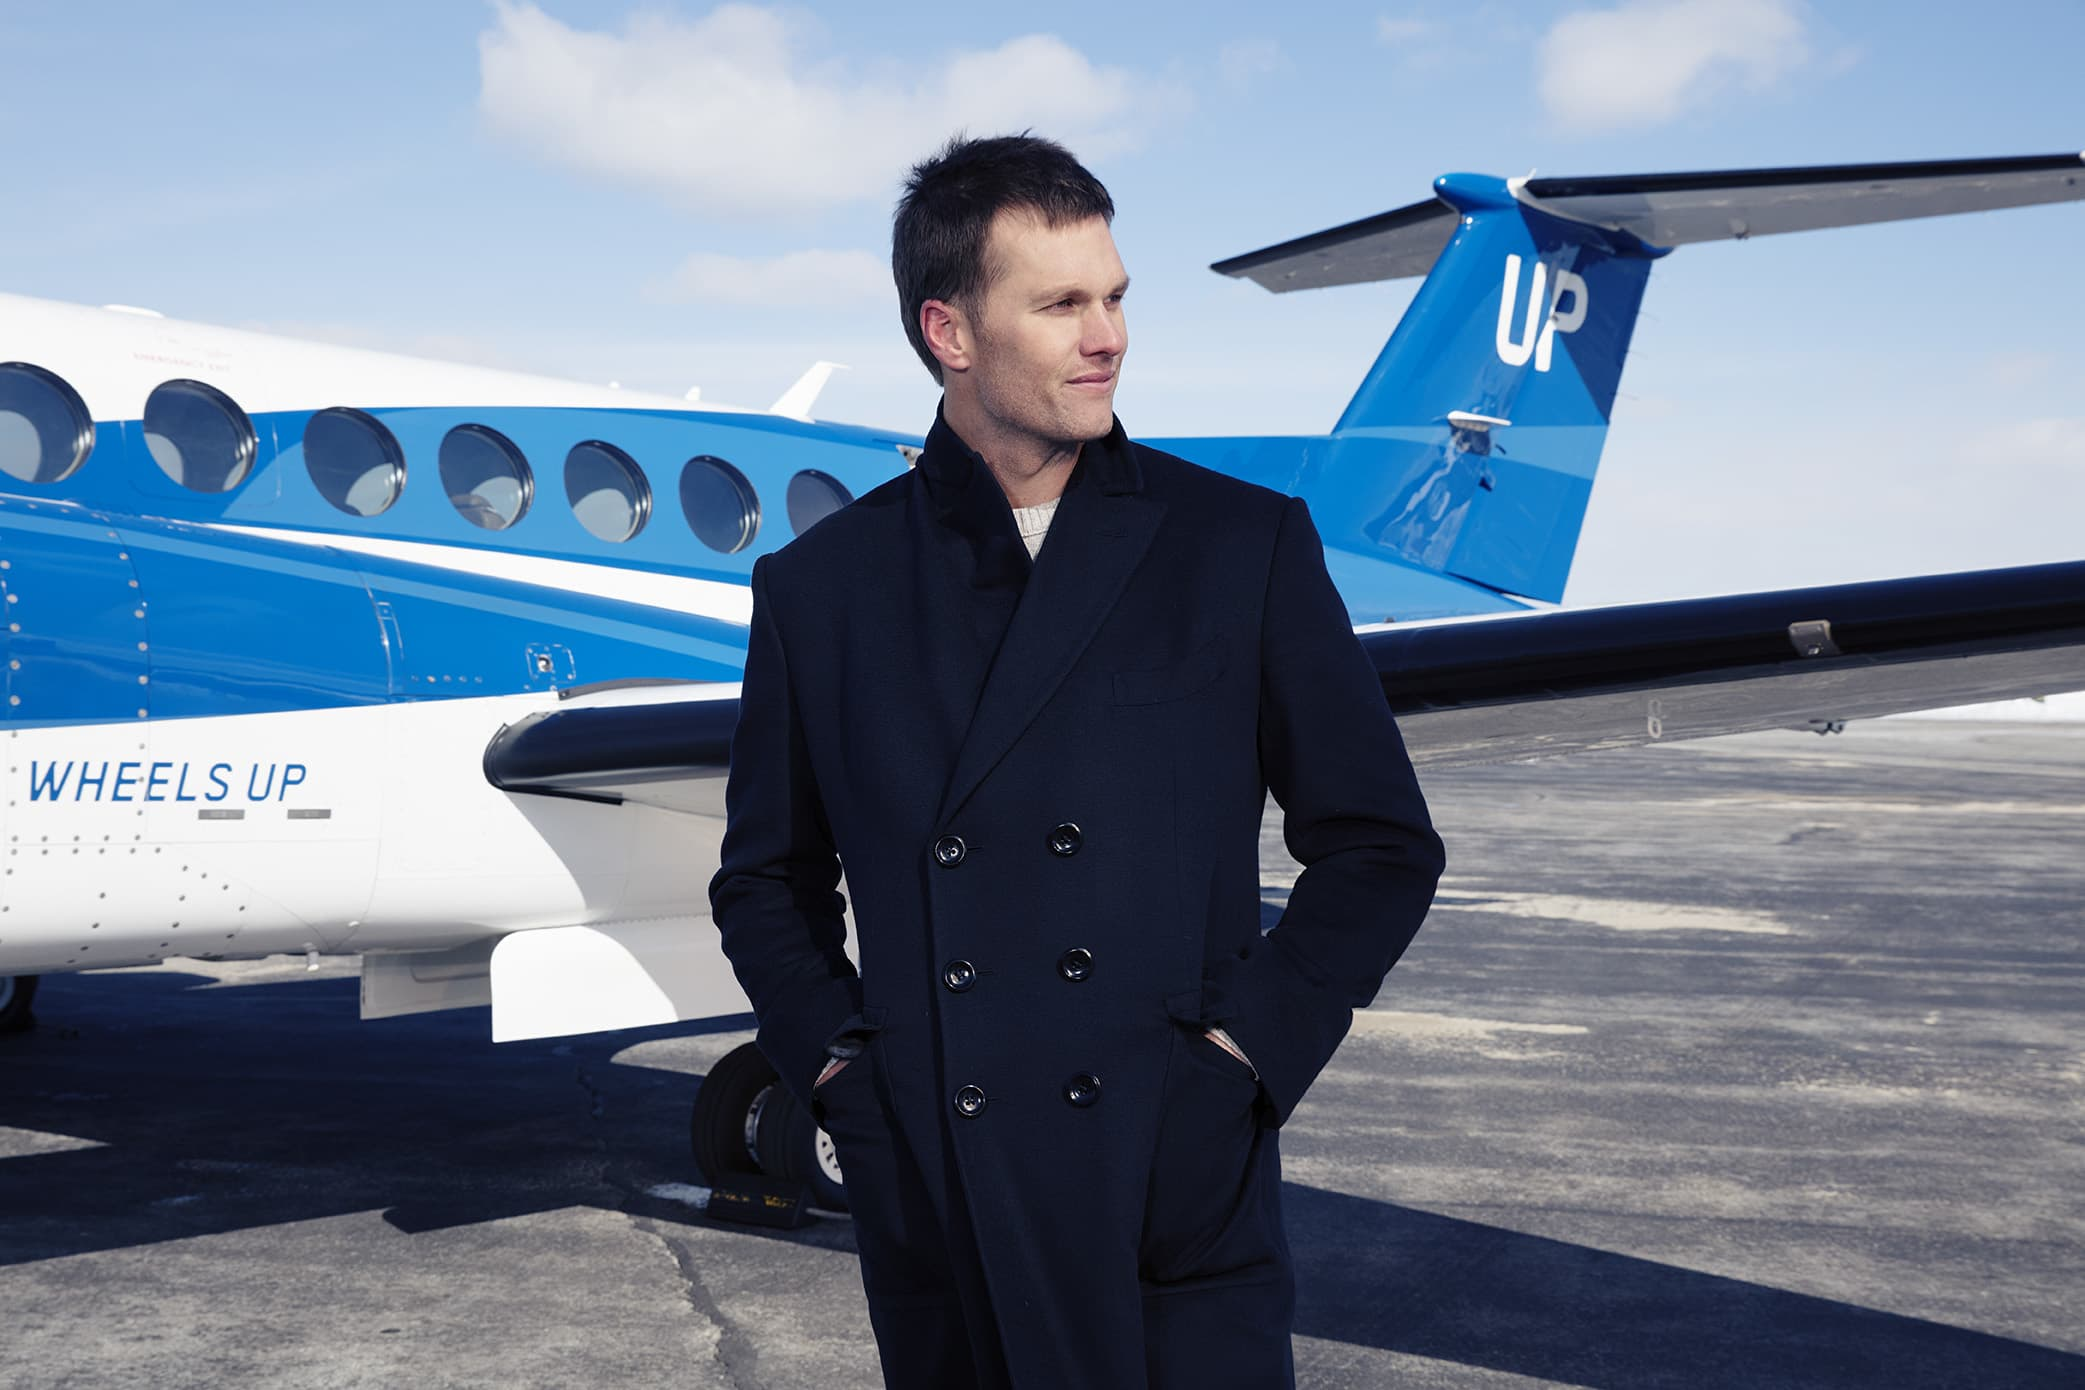 Private aviation start-up Wheels Up valued at $1.1 billion in latest funding round